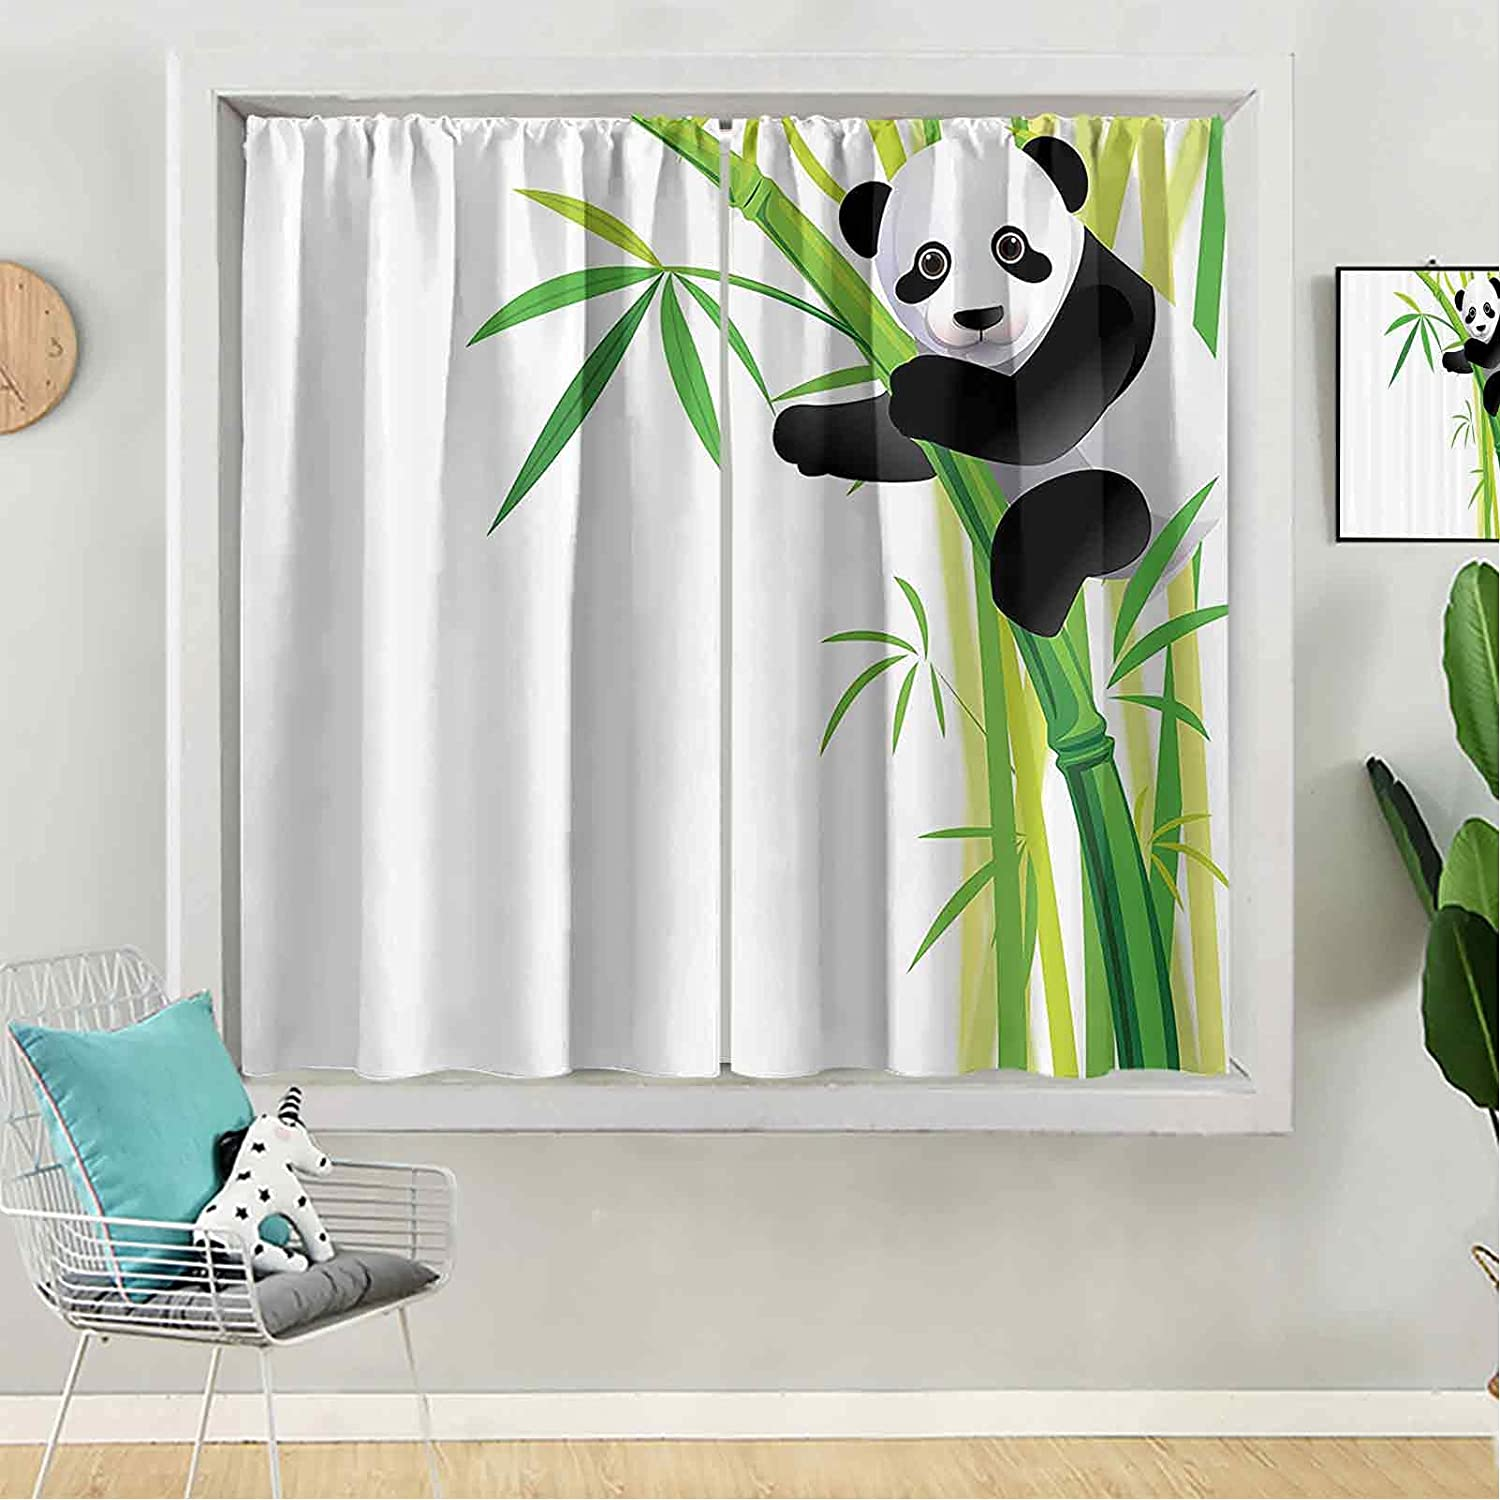 Blackout Curtain Popular Phoenix Mall 72 inches Long B for Panel Kids Window